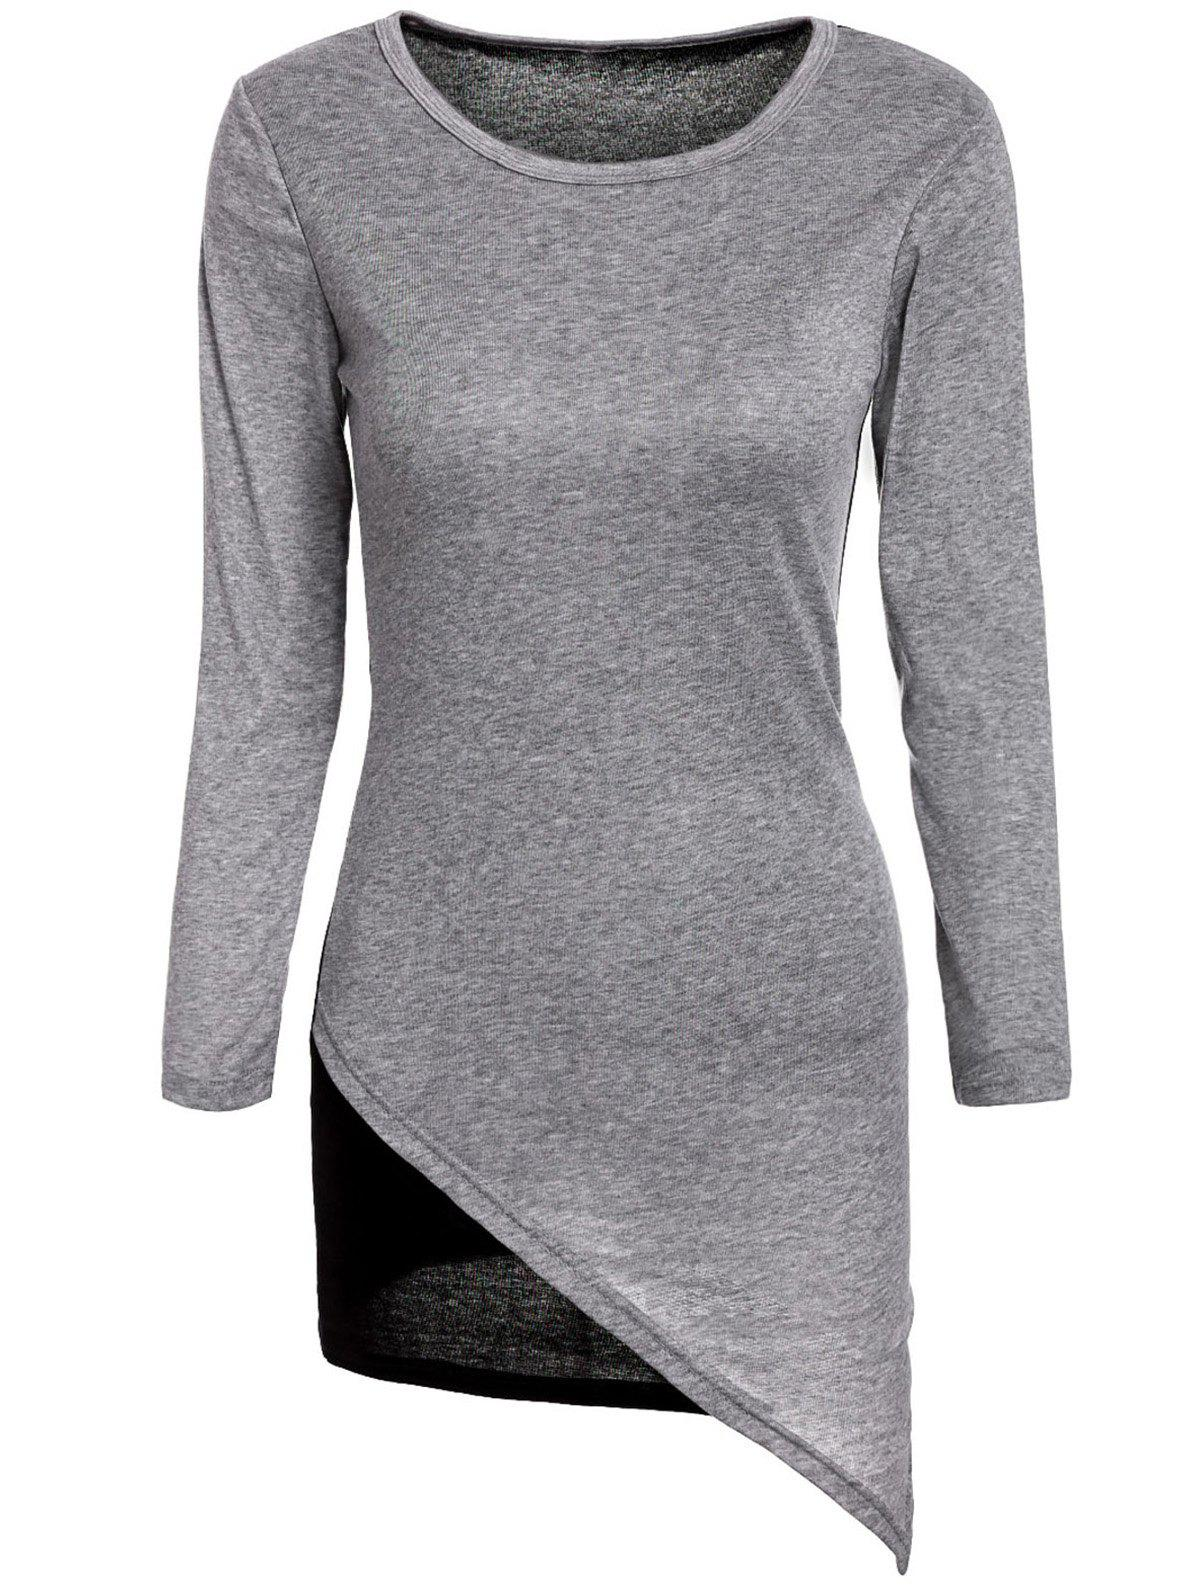 Stylish Women's Scoop Neck Long Sleeves Color Splicing Irregular Hem Flocking Dress - GRAY M